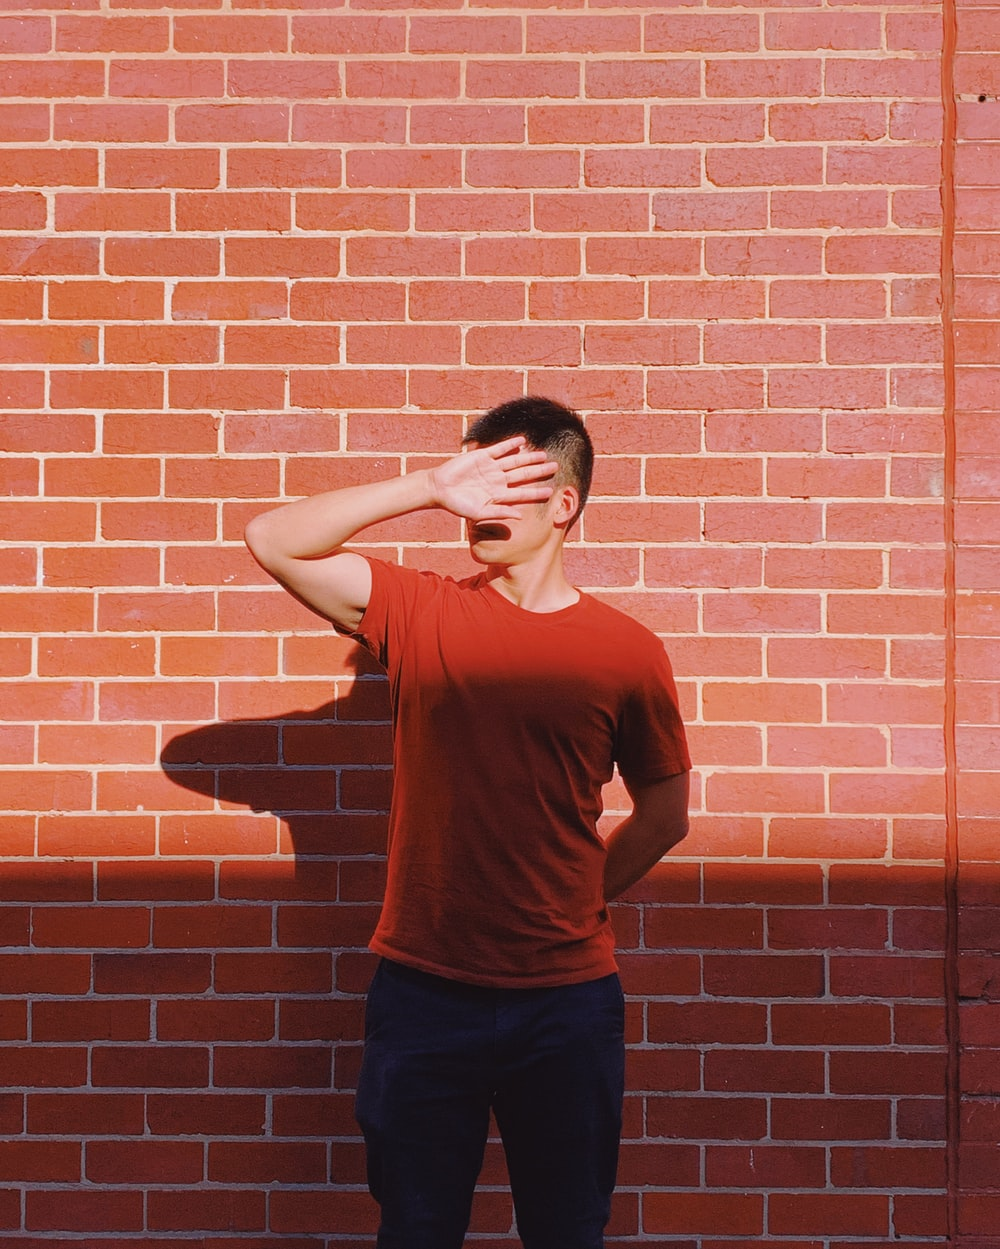 man standing in front of brick wall